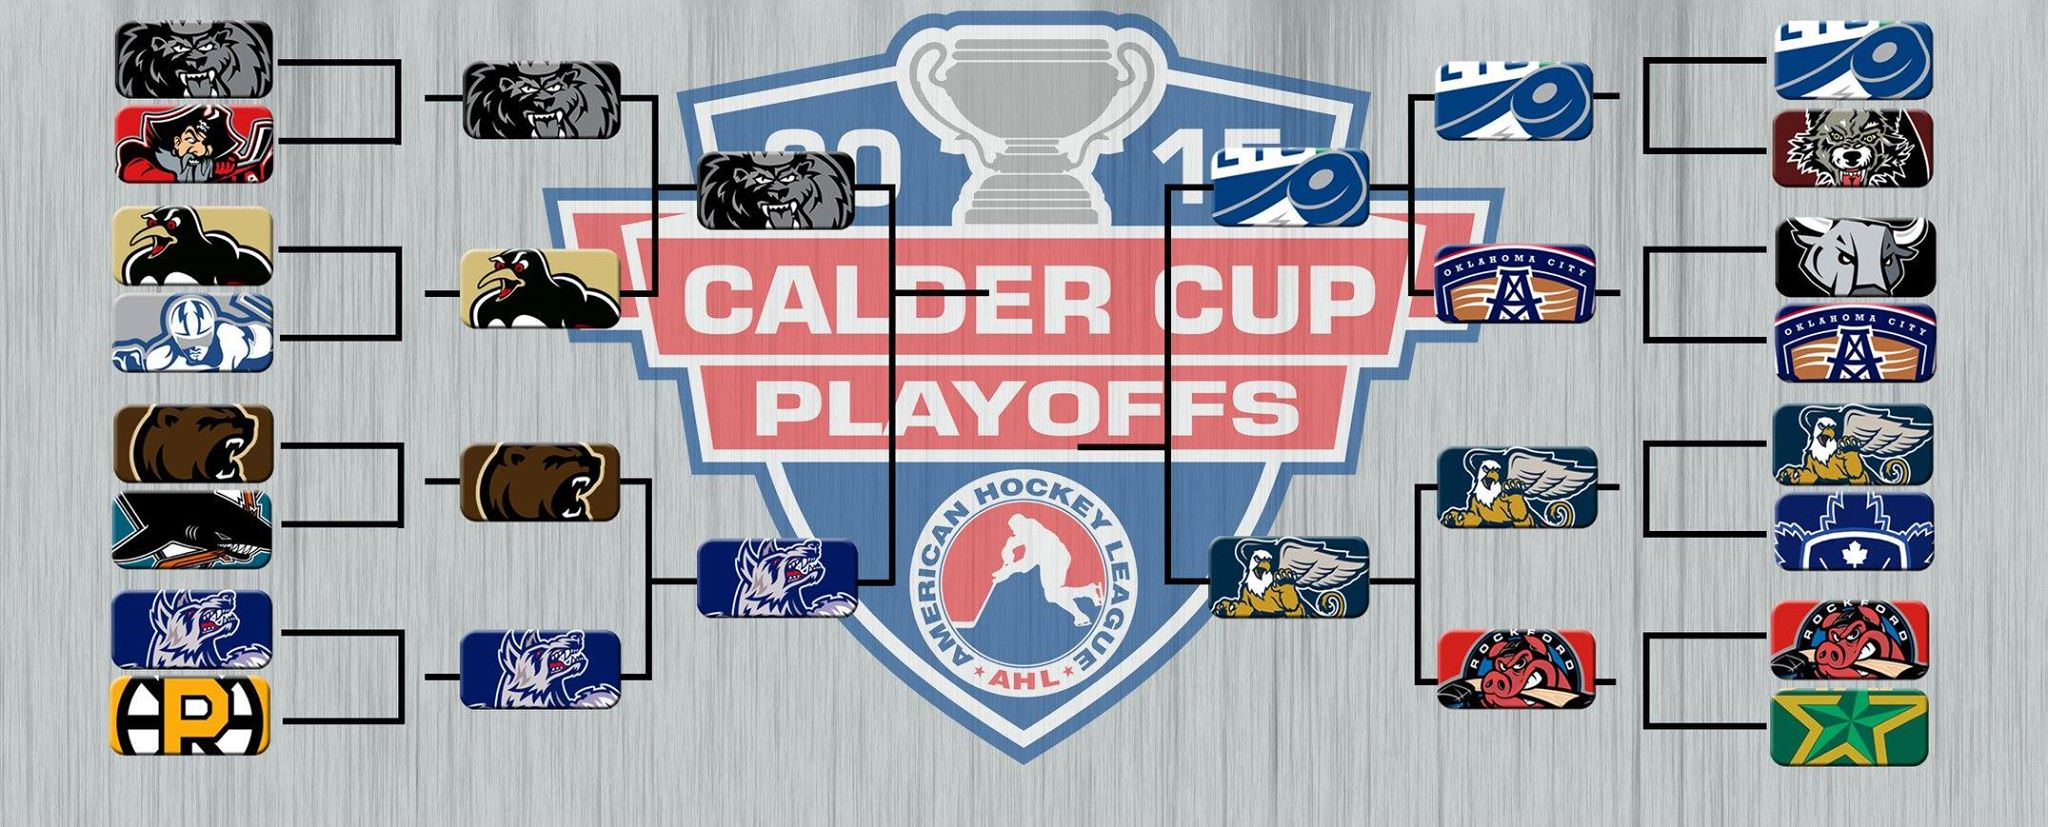 2015 Ahl Calder Cup Playoff Bracket Round 3 Hockey Cards